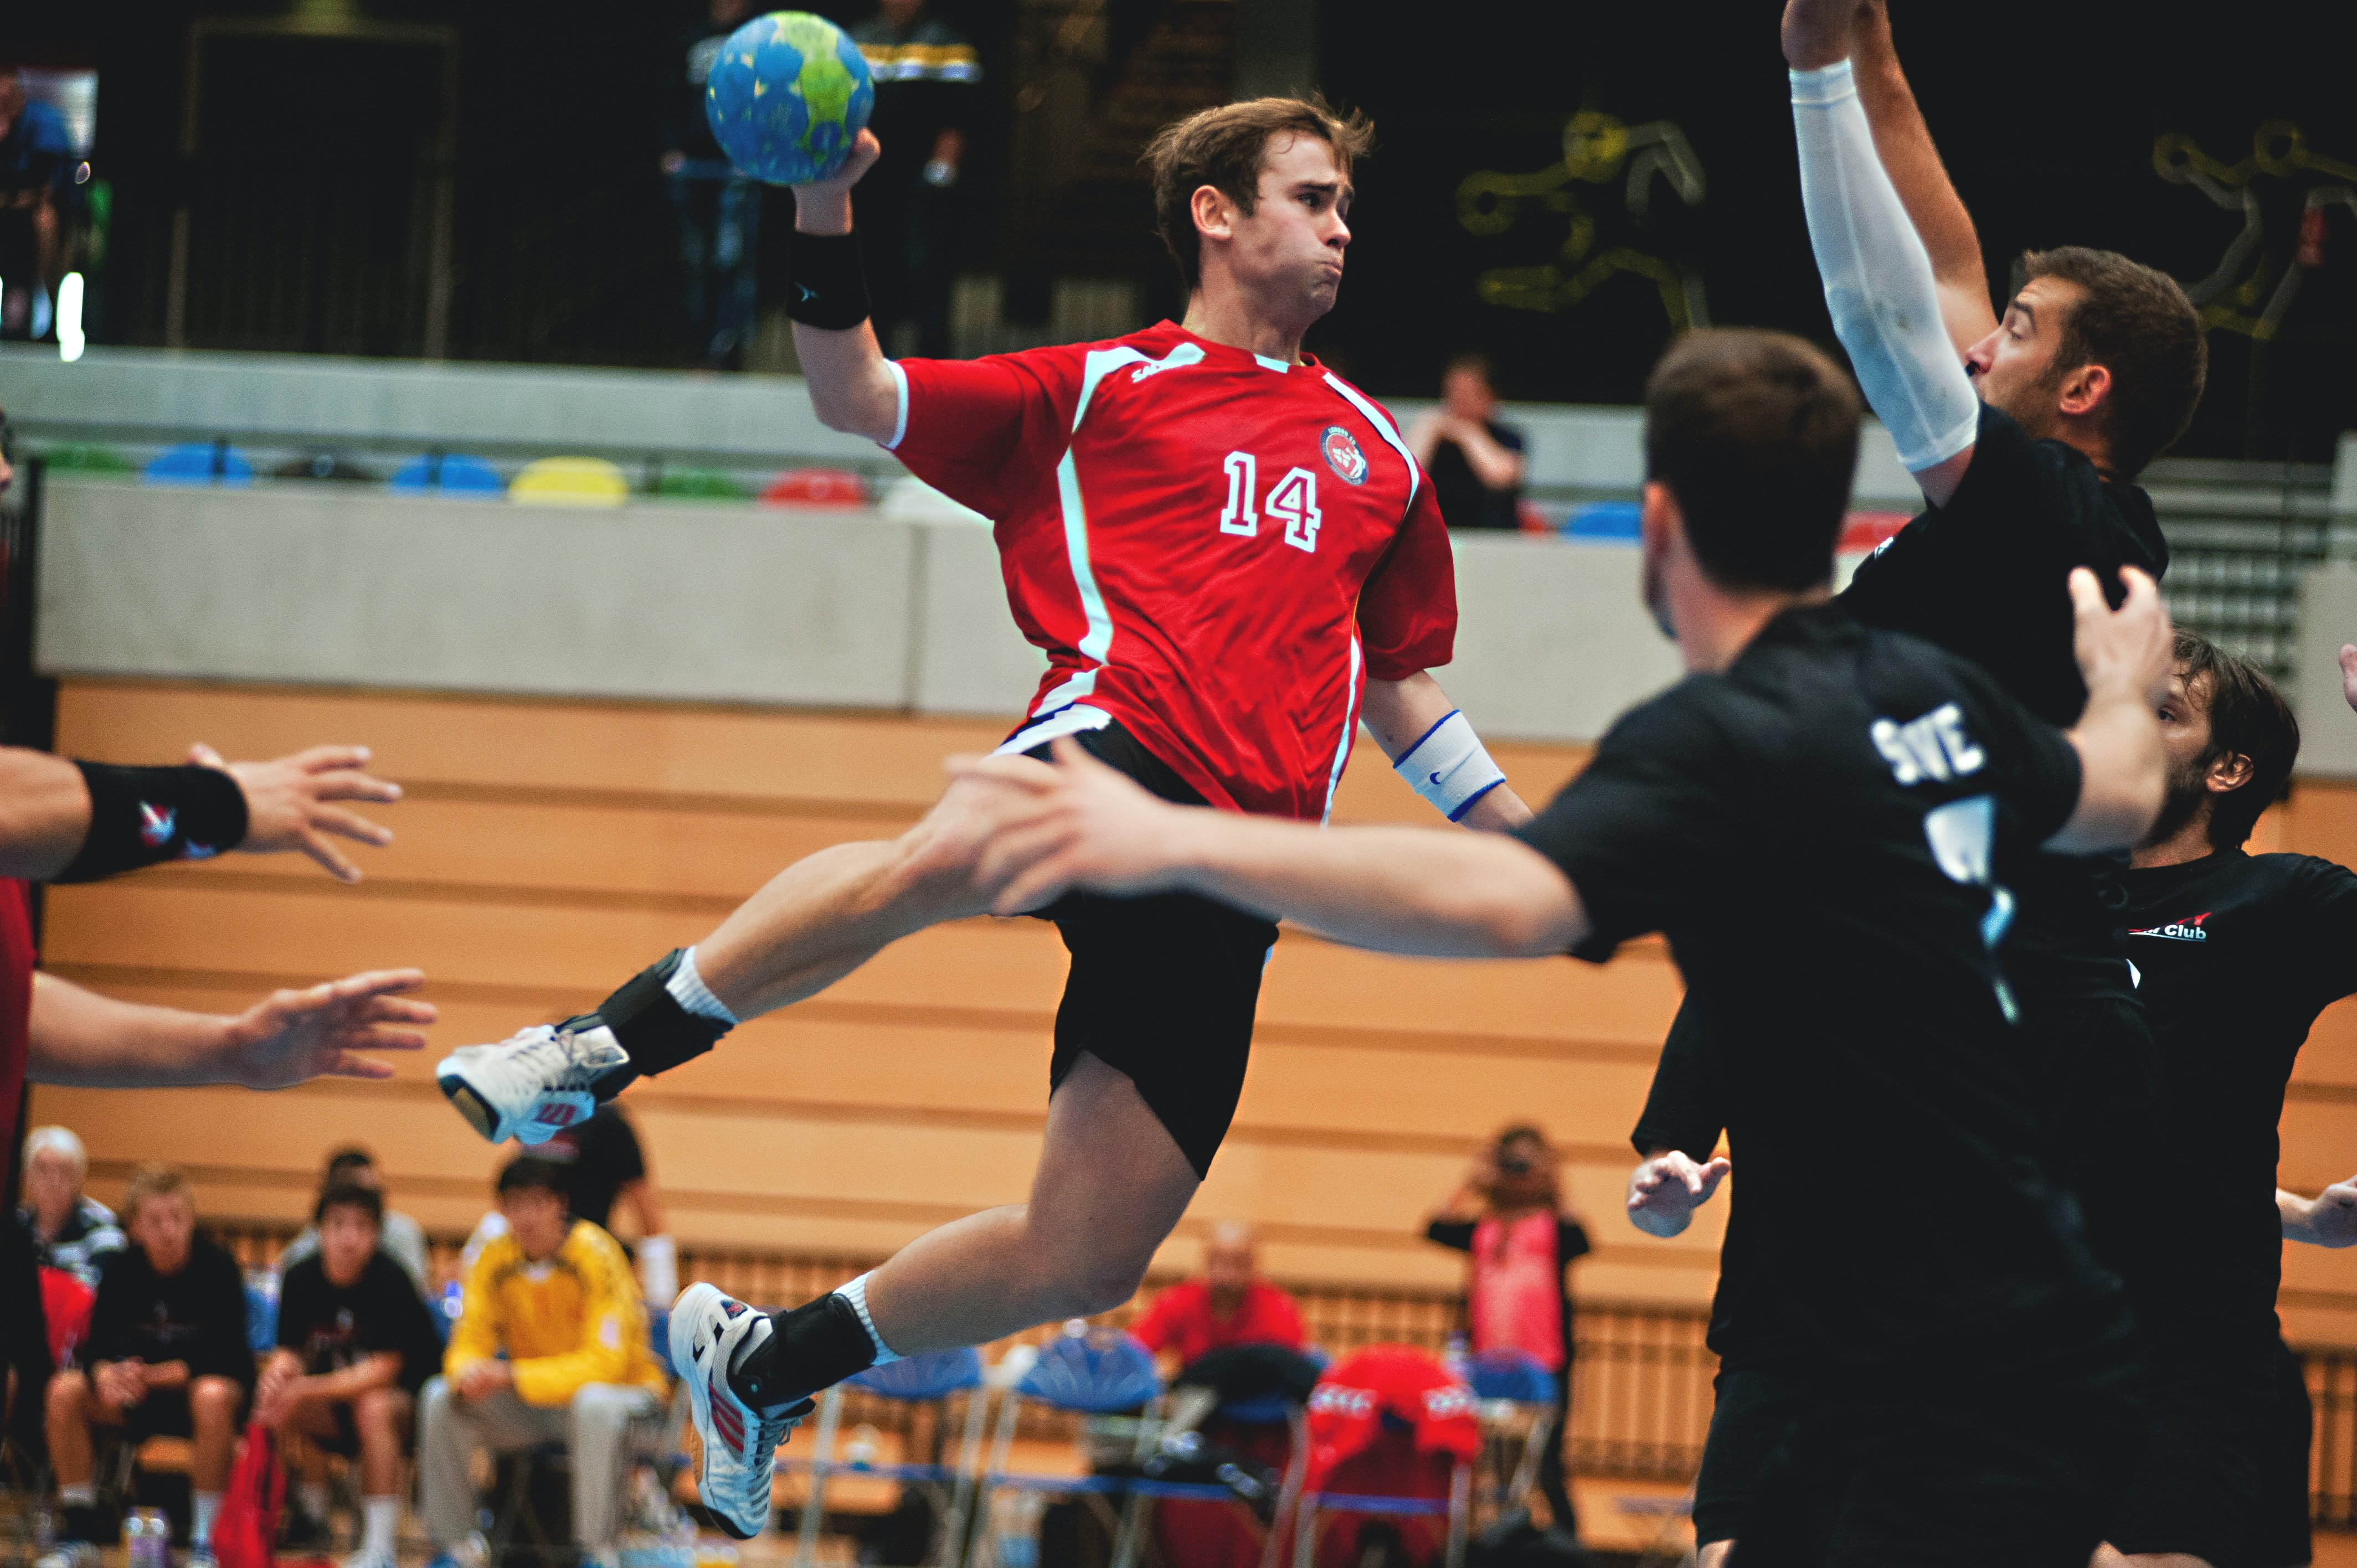 man holding ball while jumping near three mne